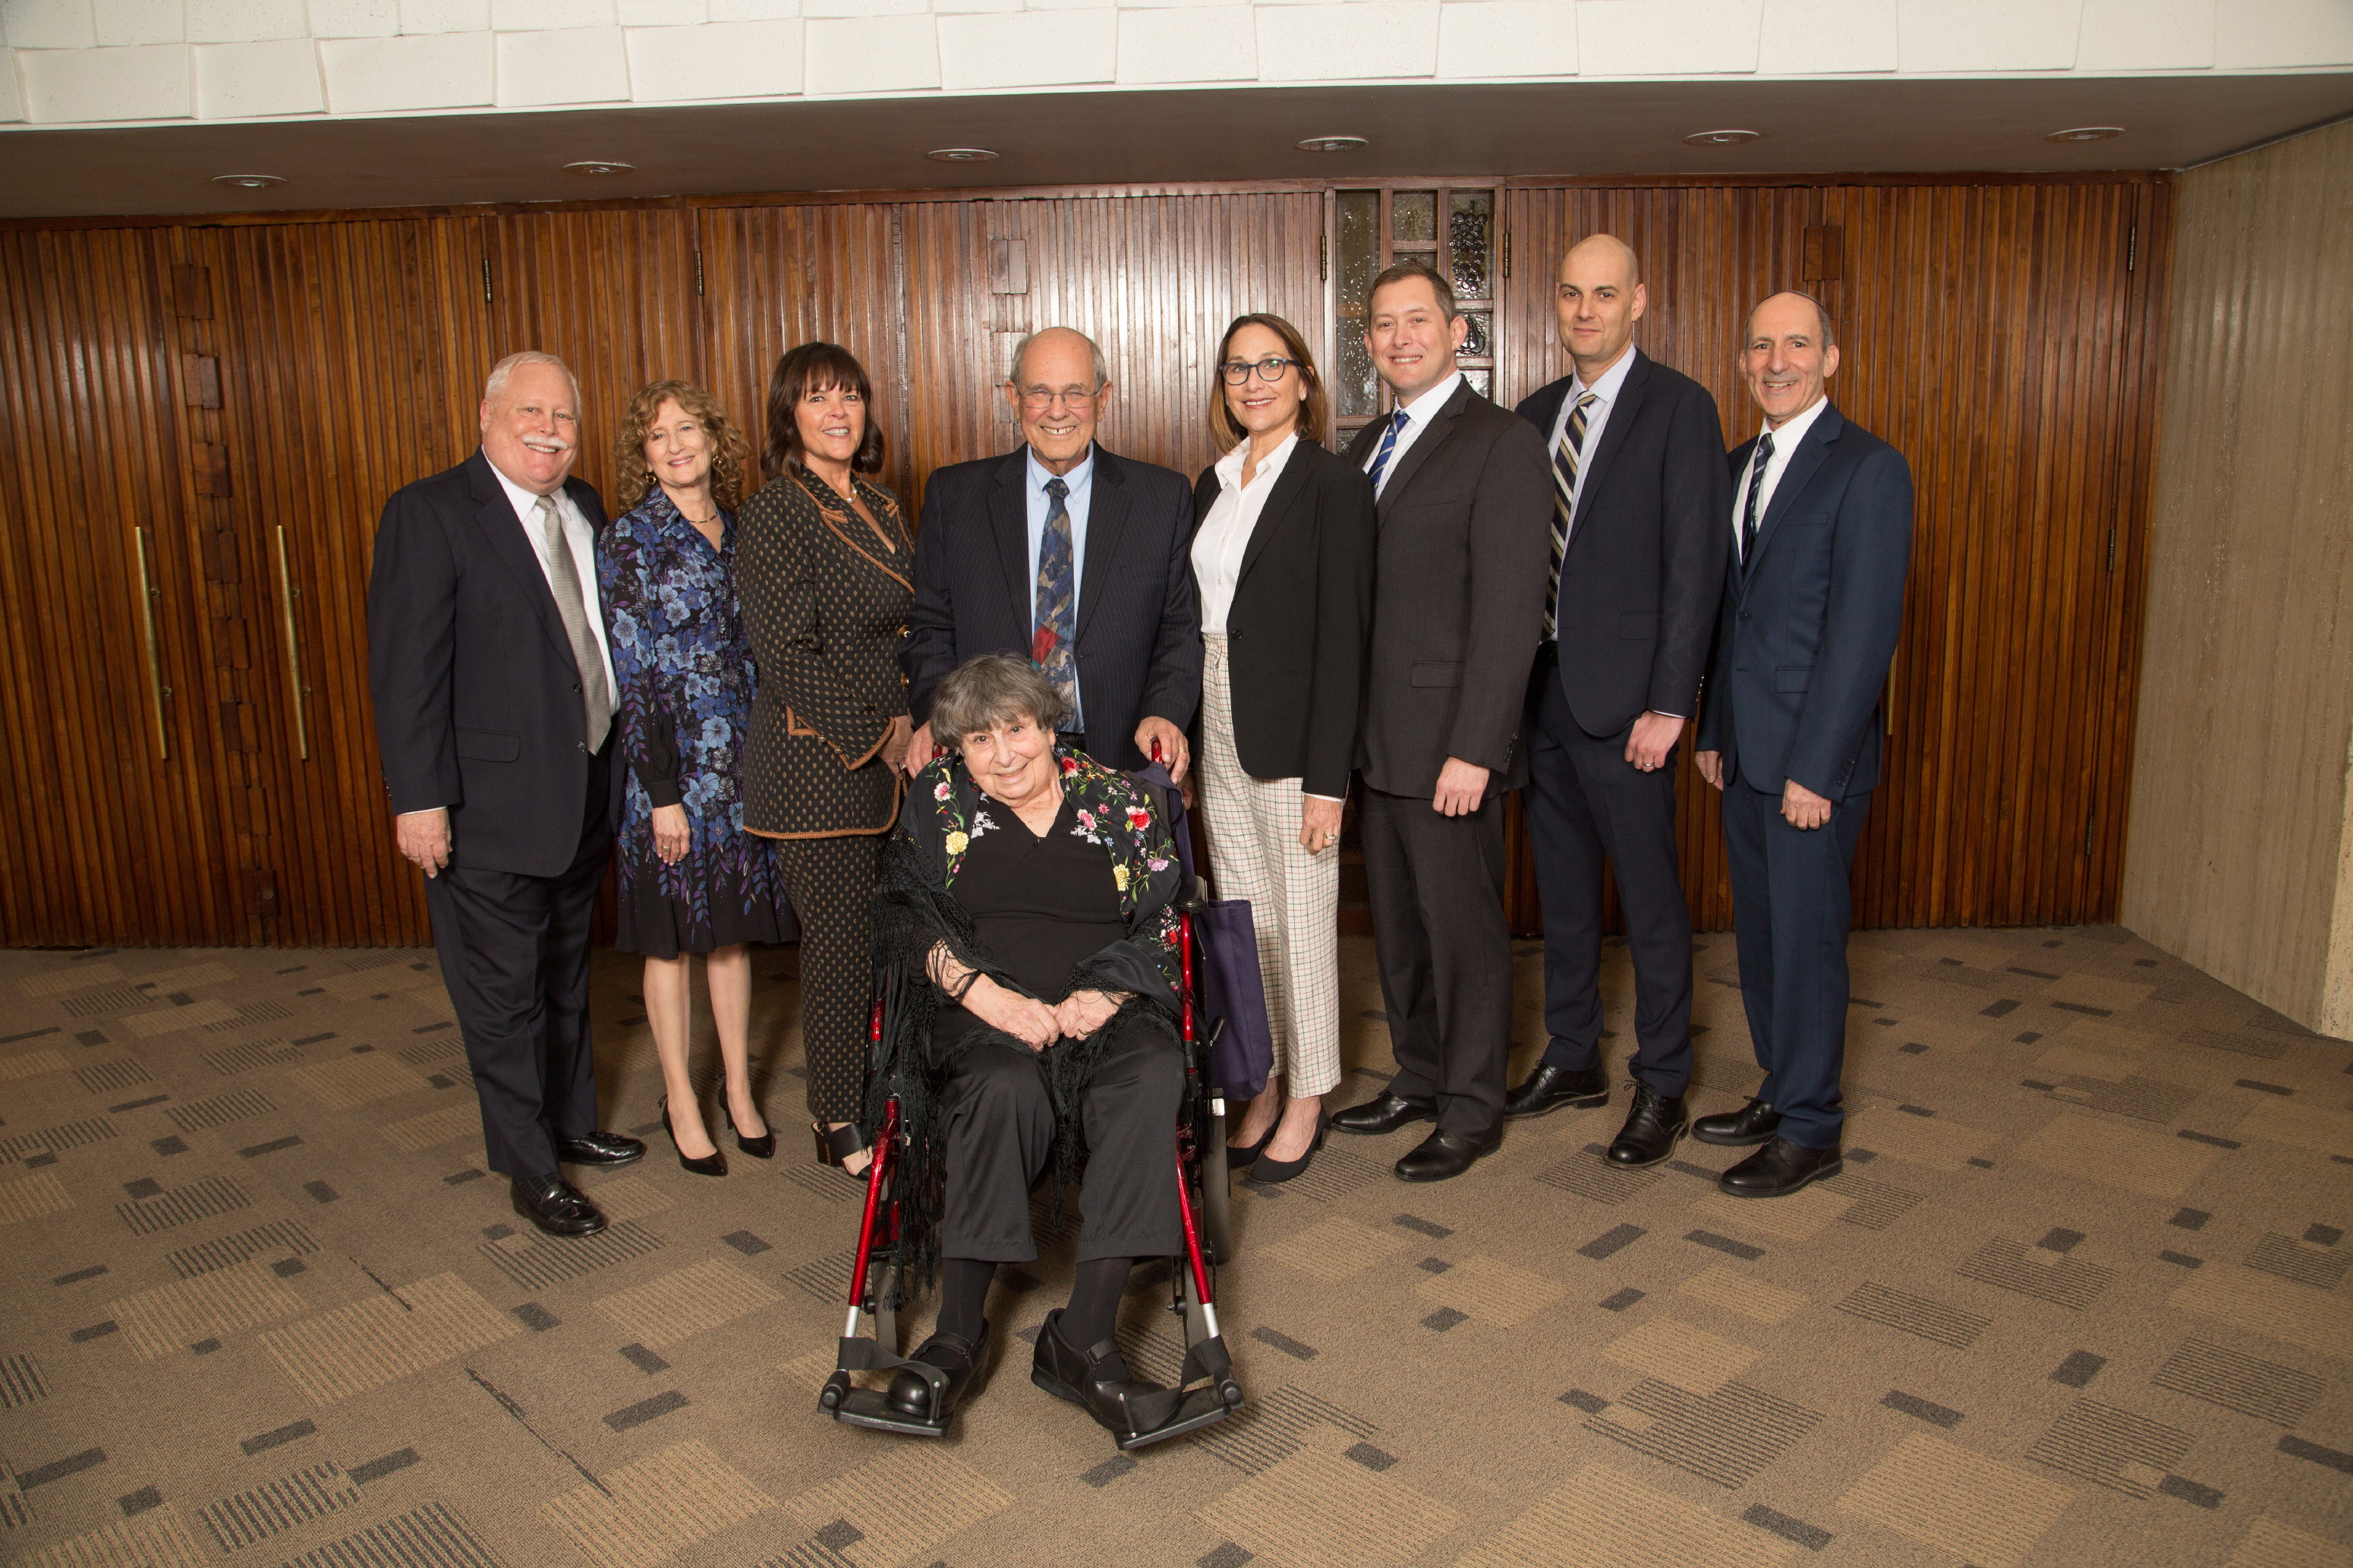 BJE Gala Honorees with Gala Co-Chairs Susan Jacoby Stern, Maggie Howard and Brian Kaplan with BJE Executive Director Dr. Gil Graff and BJE Board President Mark Berns